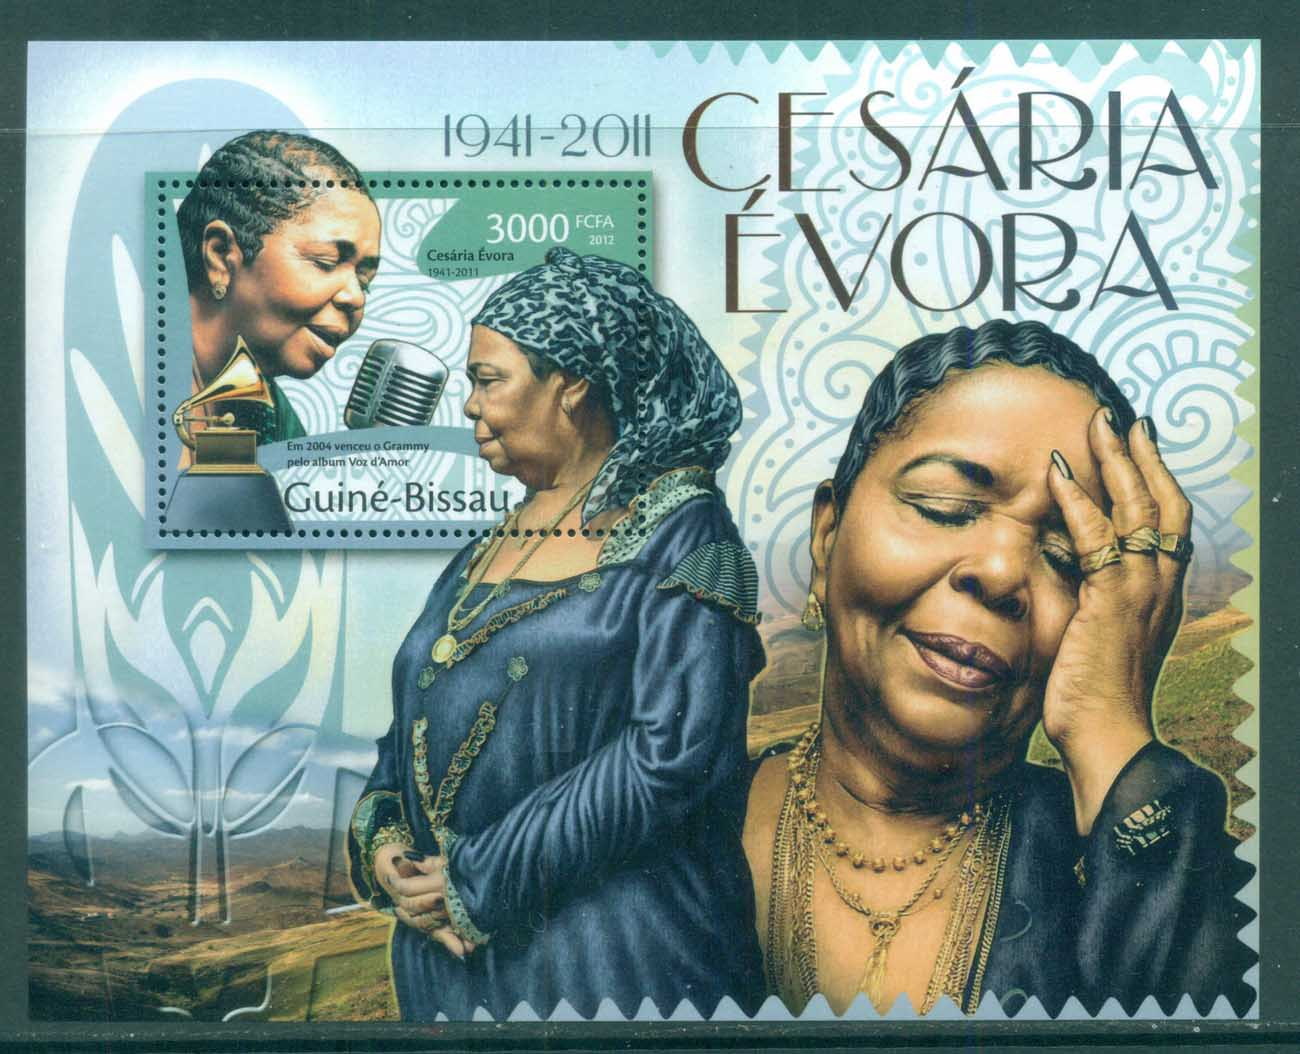 Guinea Bissau 2012 Famous People, Music, Female, Cesaria Evora MS MUH GB007